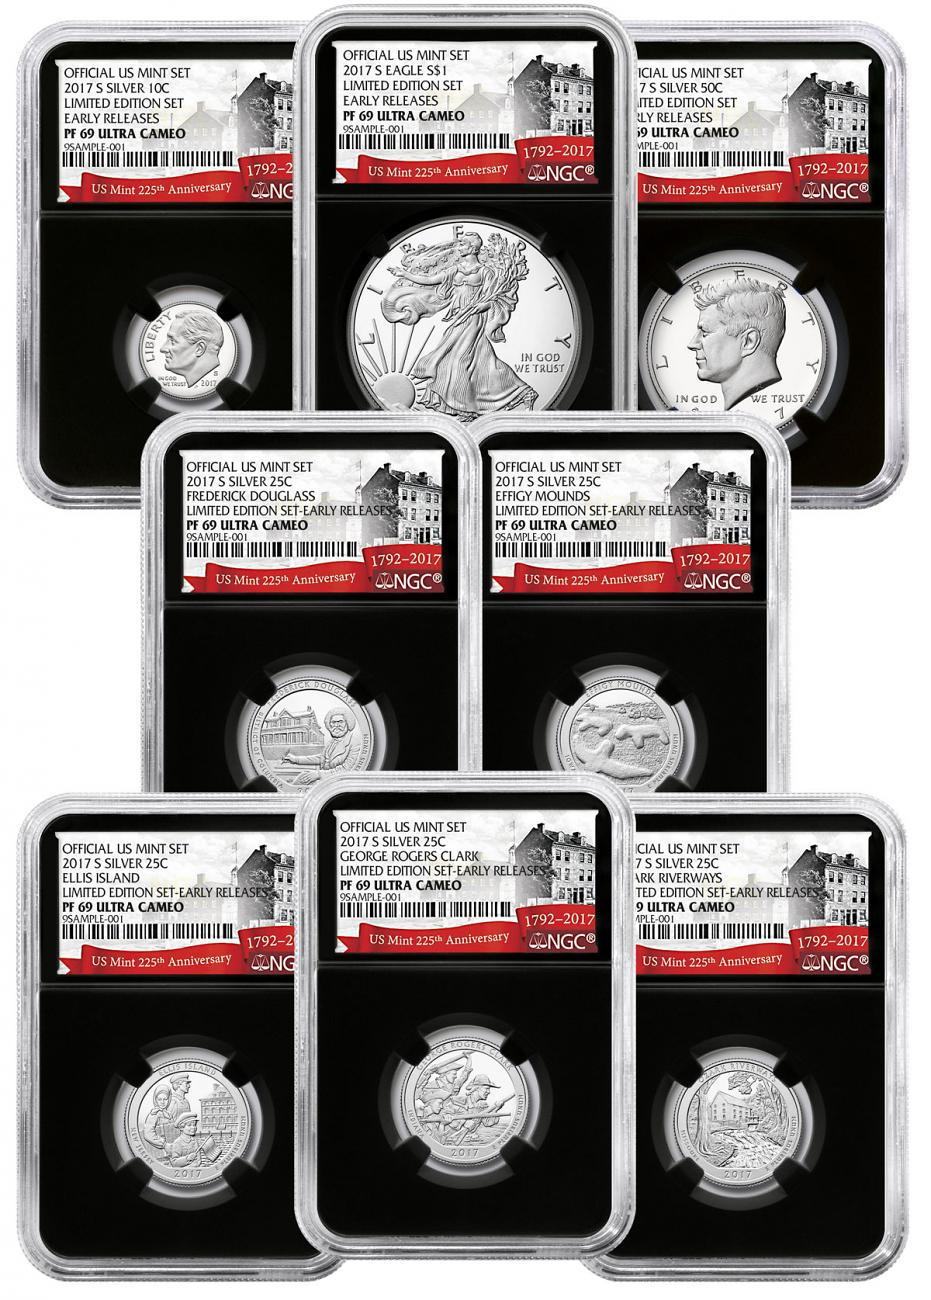 8-Coin Set - 2017-S U.S. Limited Edition Silver Proof Coins Set NGC PF69 UC ER Black Core Holder Exclusive U.S. Mint 225th Anniversary Label